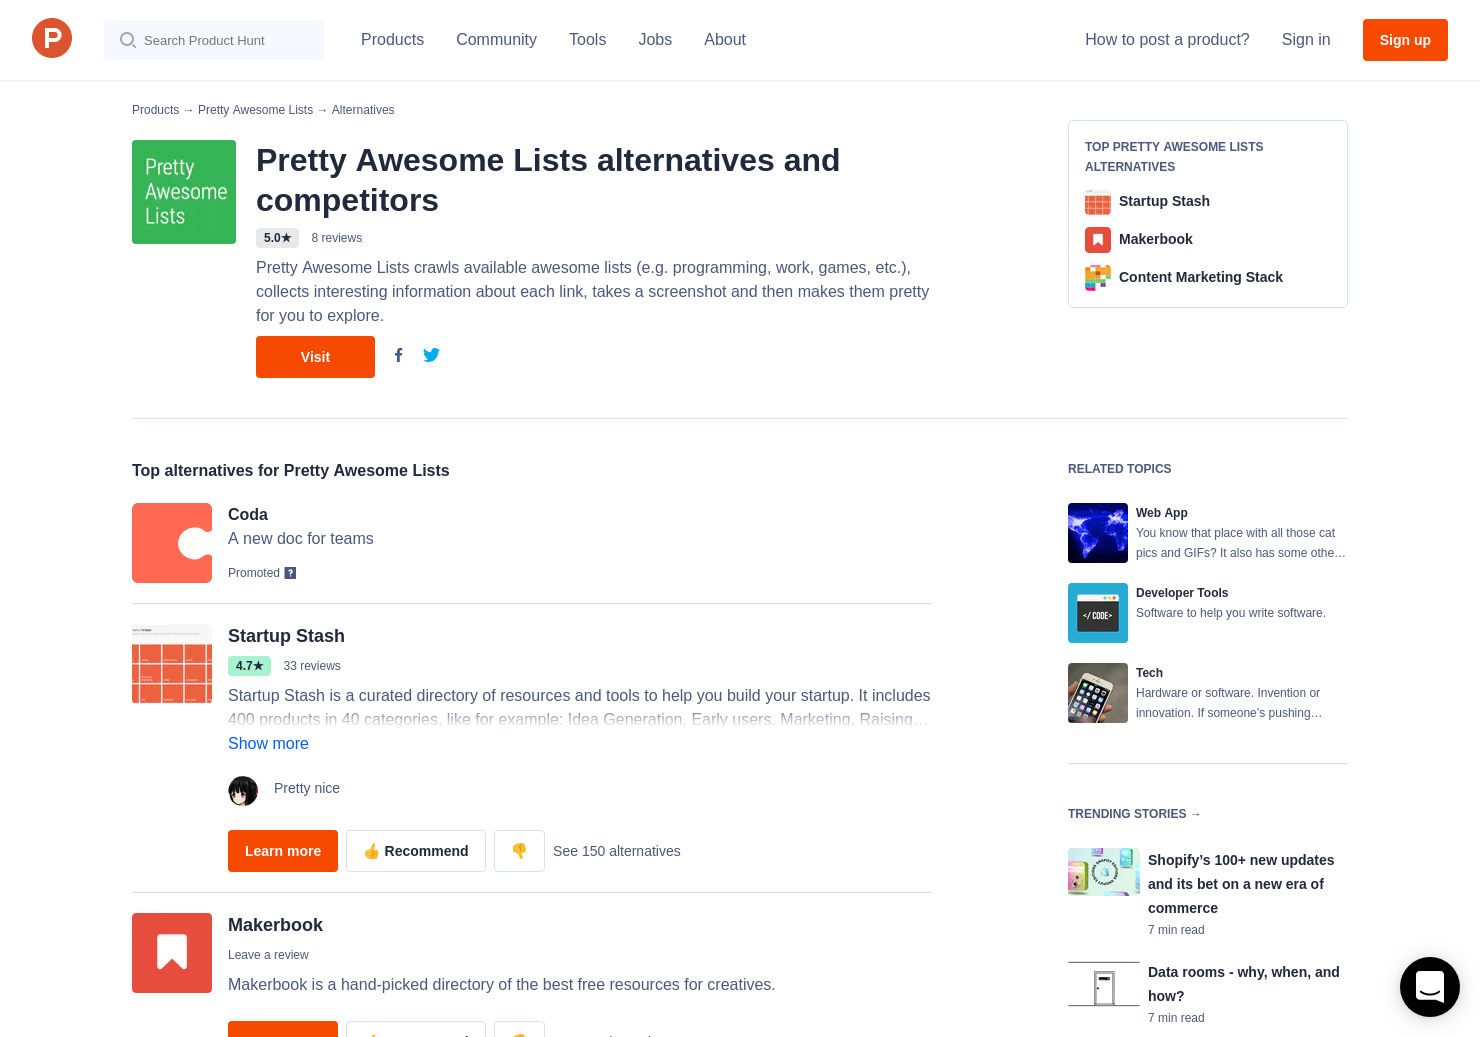 20 Alternatives to Pretty Awesome Lists | Product Hunt